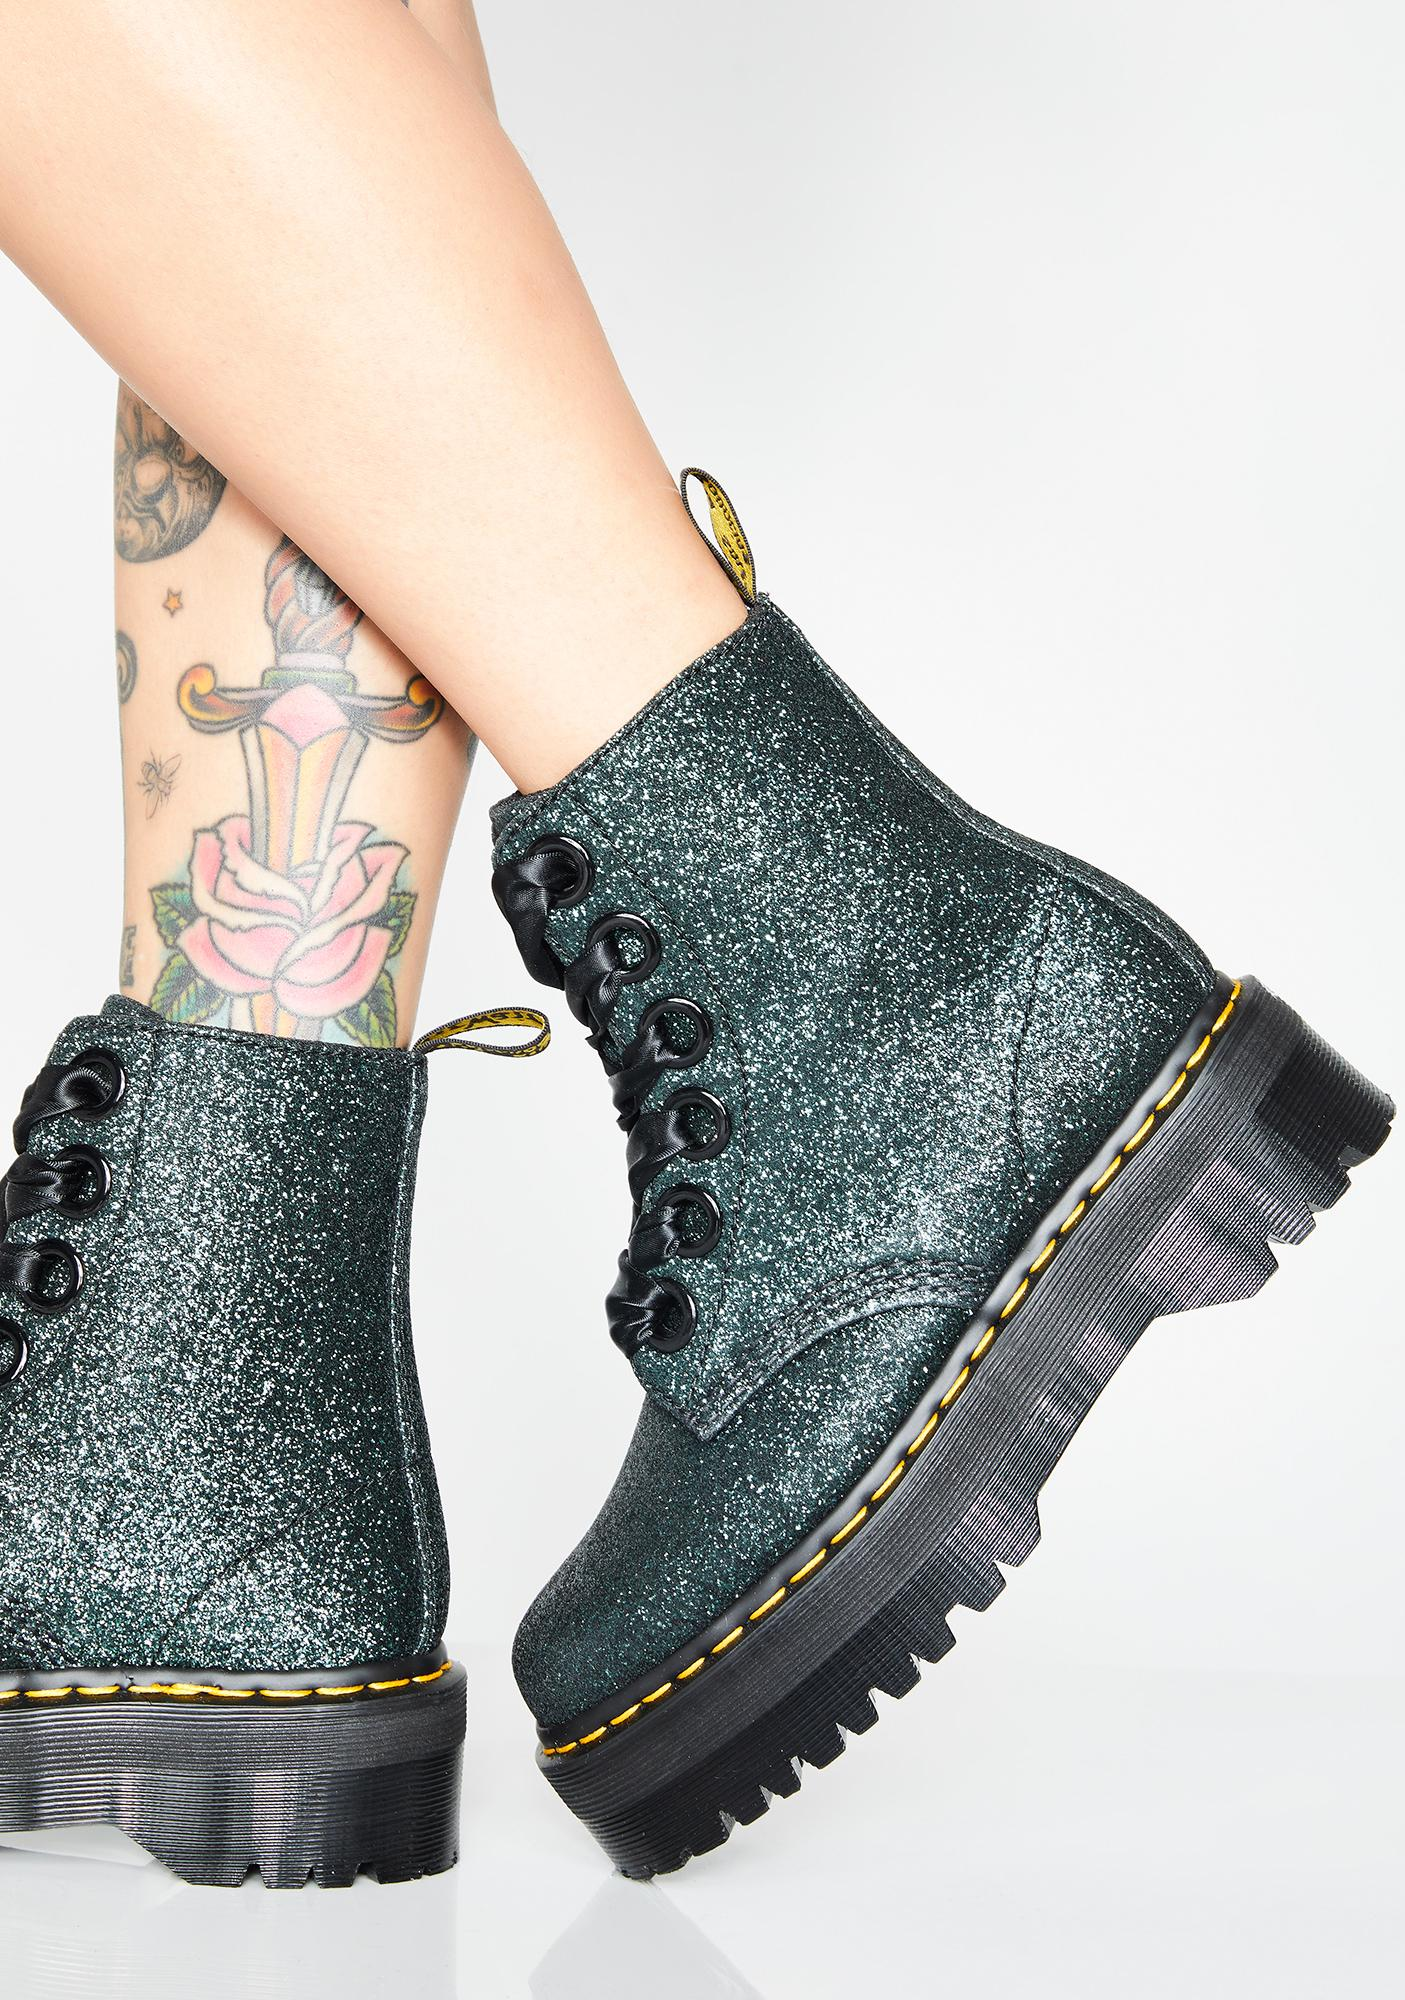 f1041f080eb9 Dr Martens Molly Black Glitter Platform Boots - Best Picture Of Boot ...